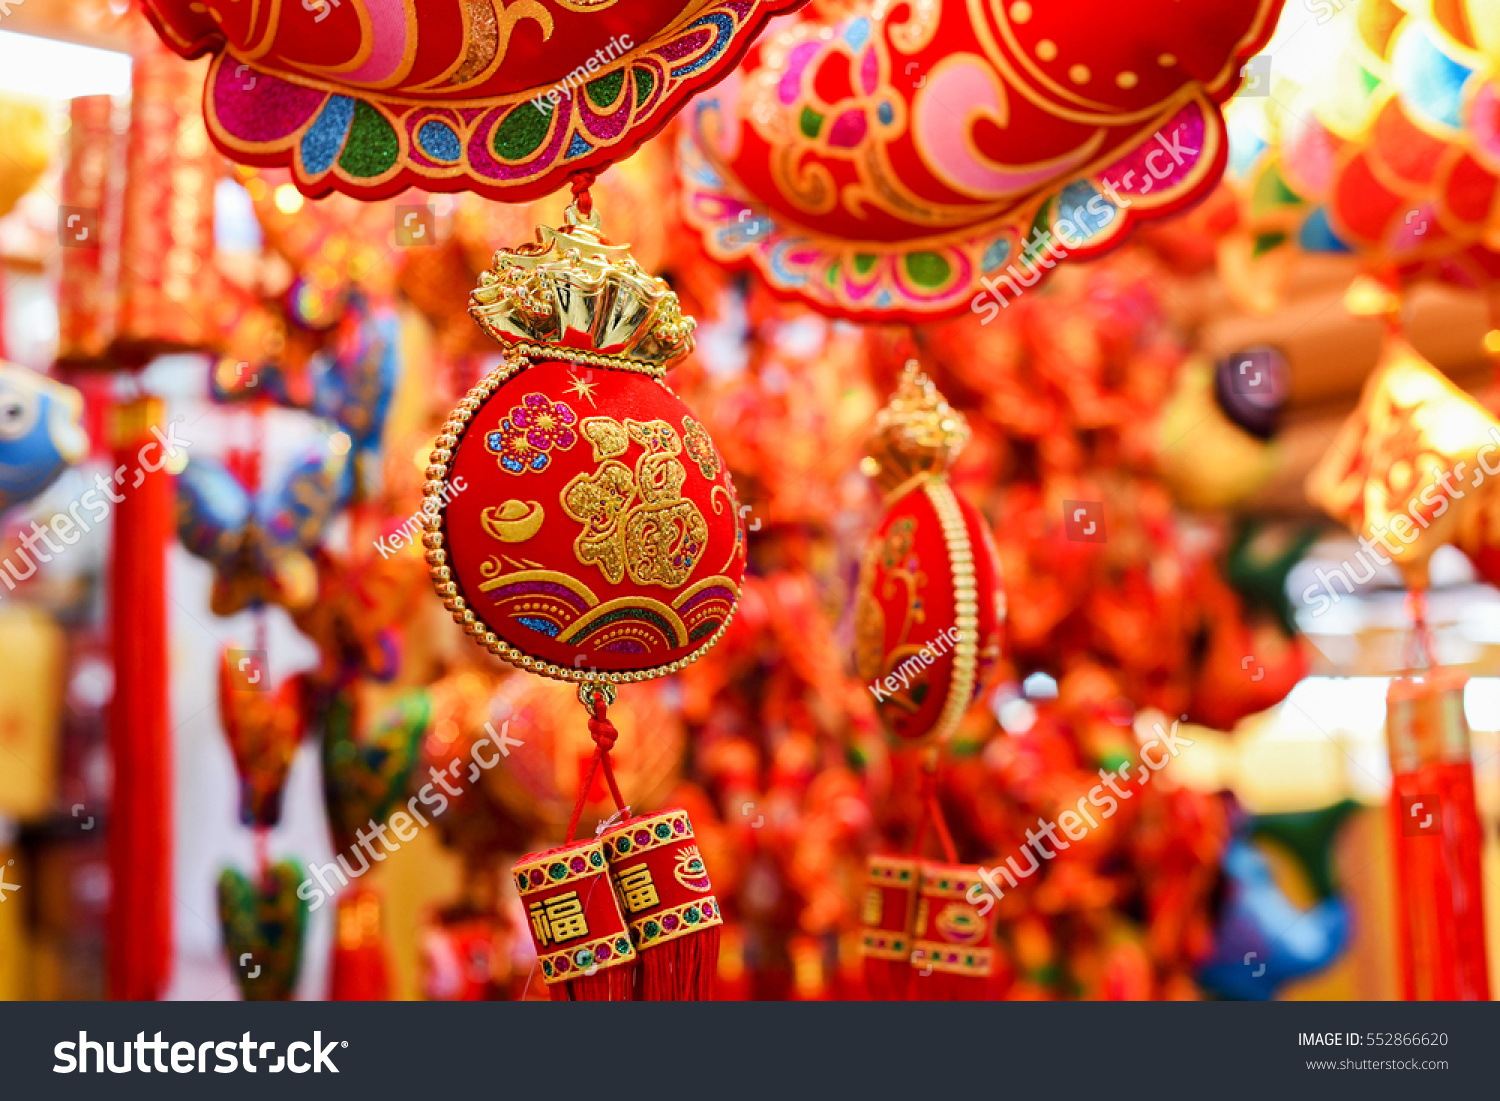 Chinese decorations. Traditional Chinese new year decorations. Chinese red  decorations.